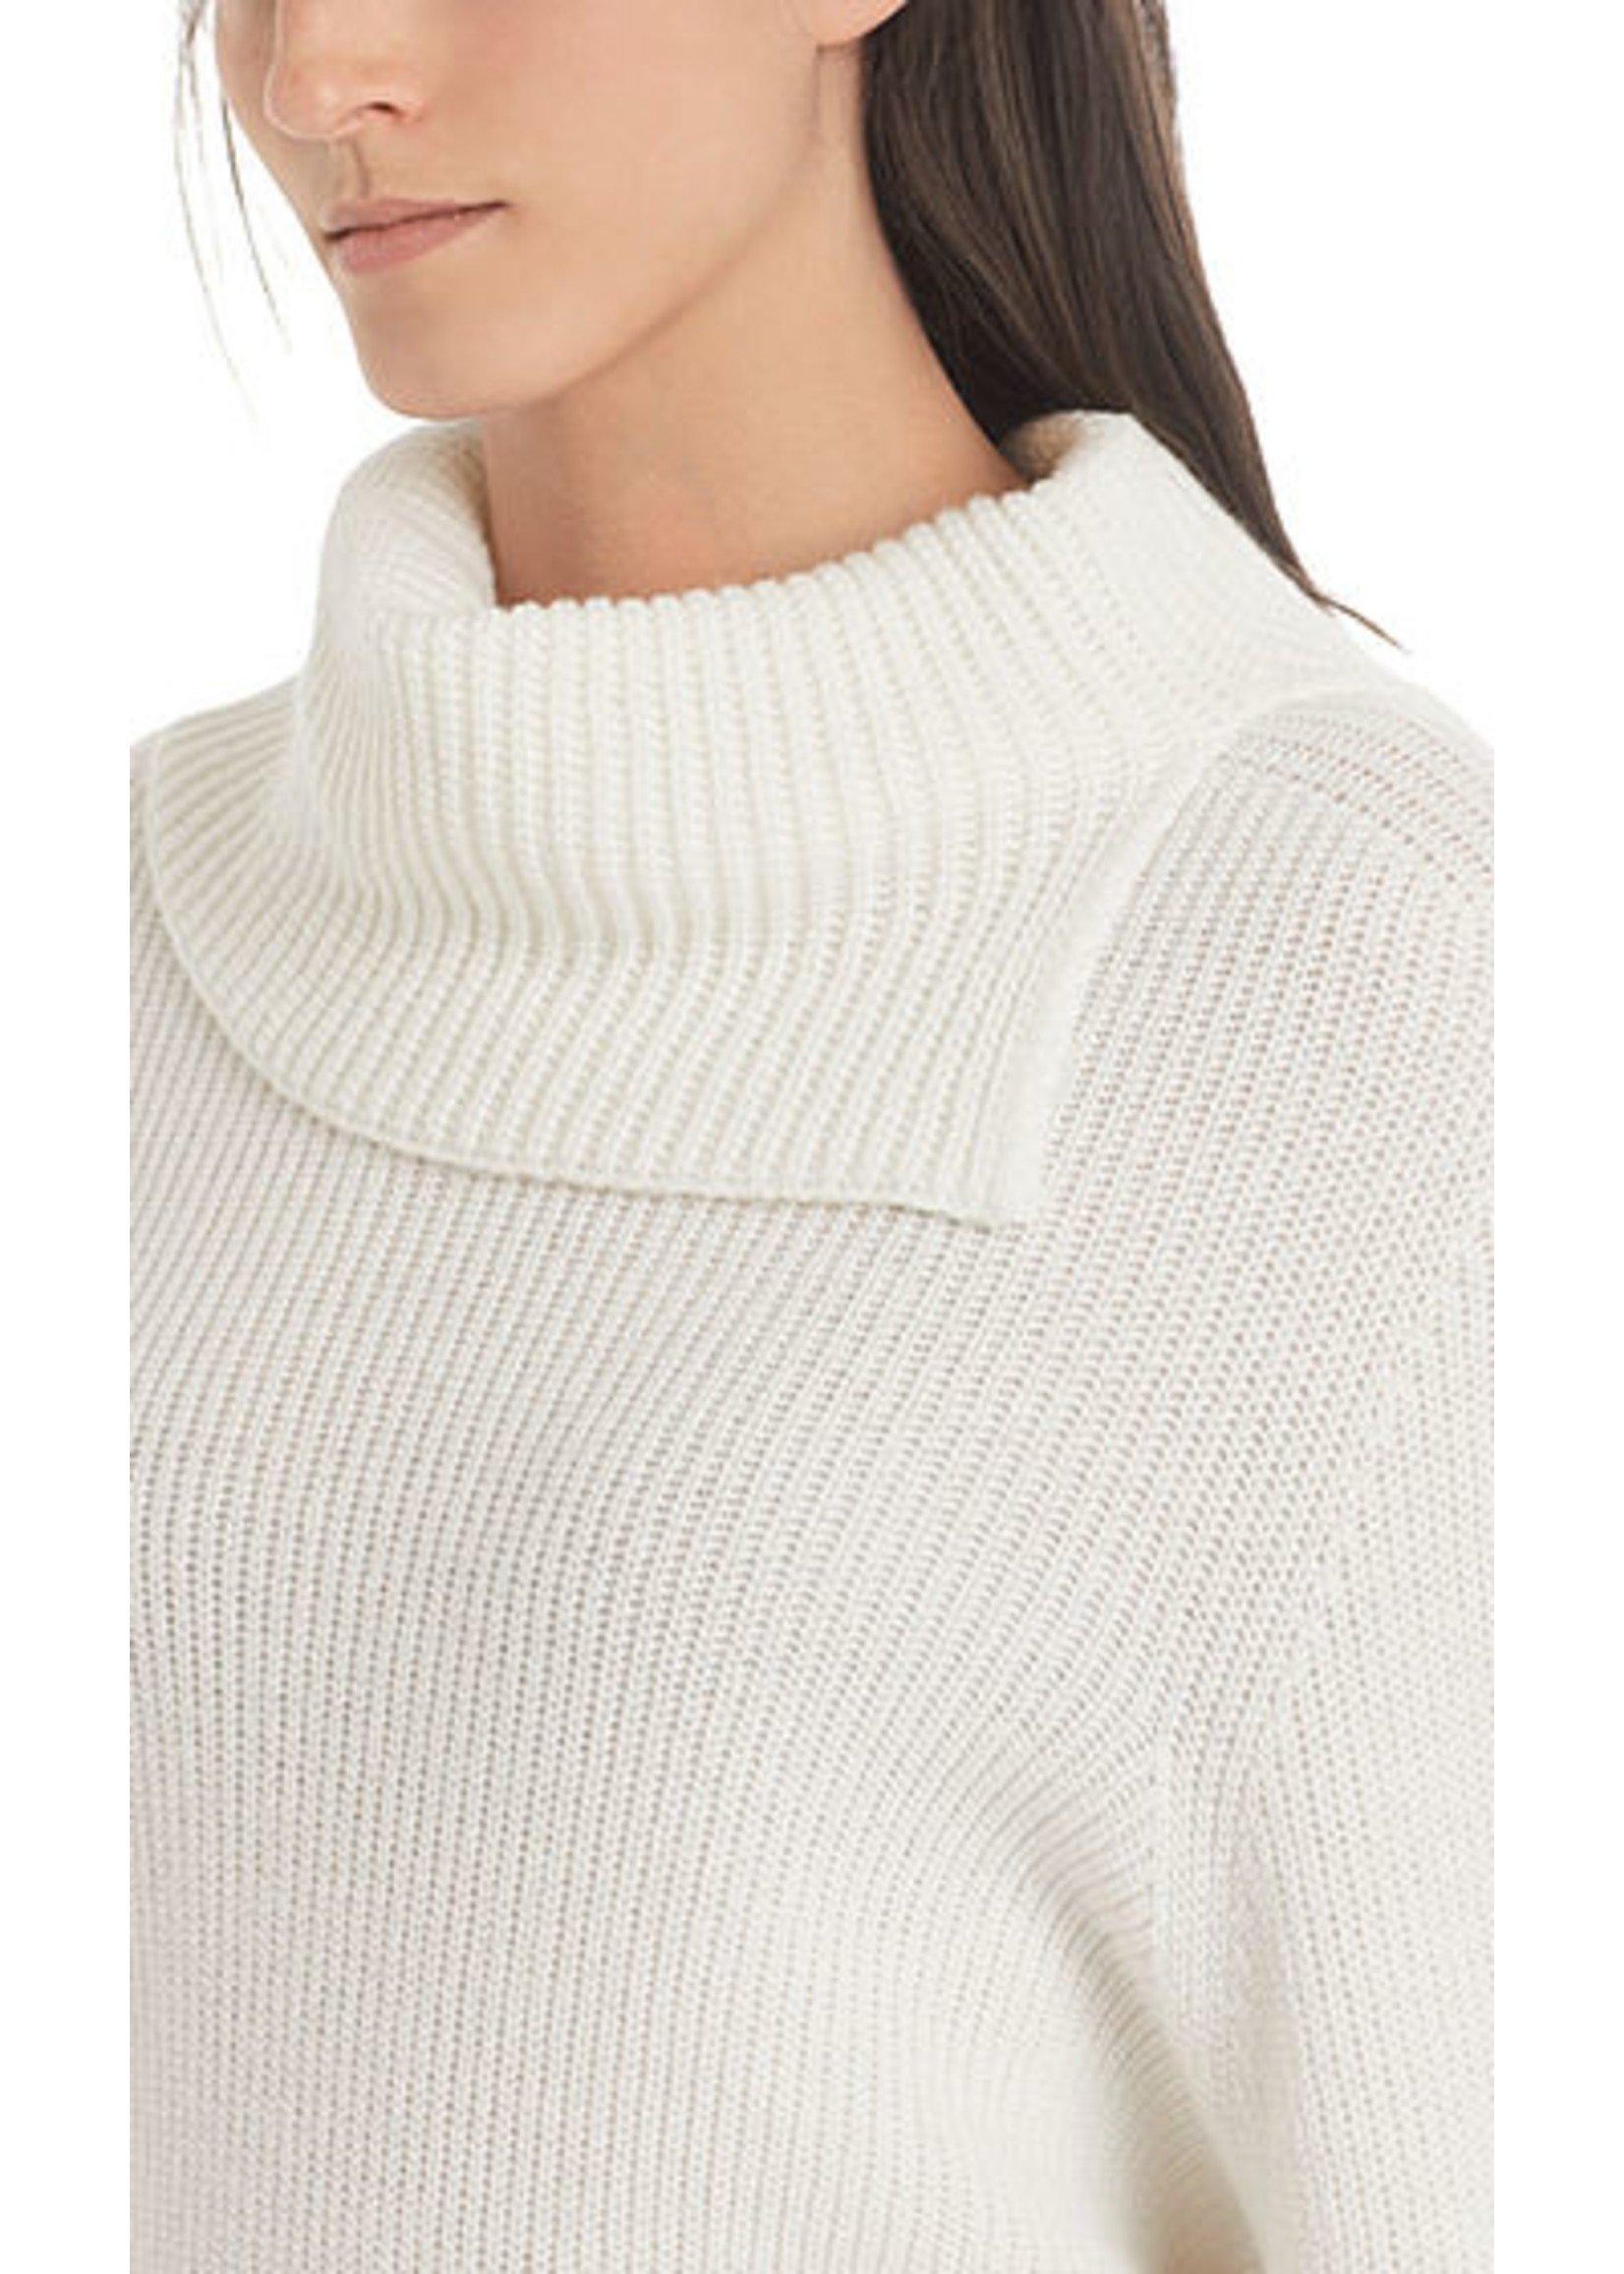 Marccain Sports Sweater RS 41.36 M29 off-white